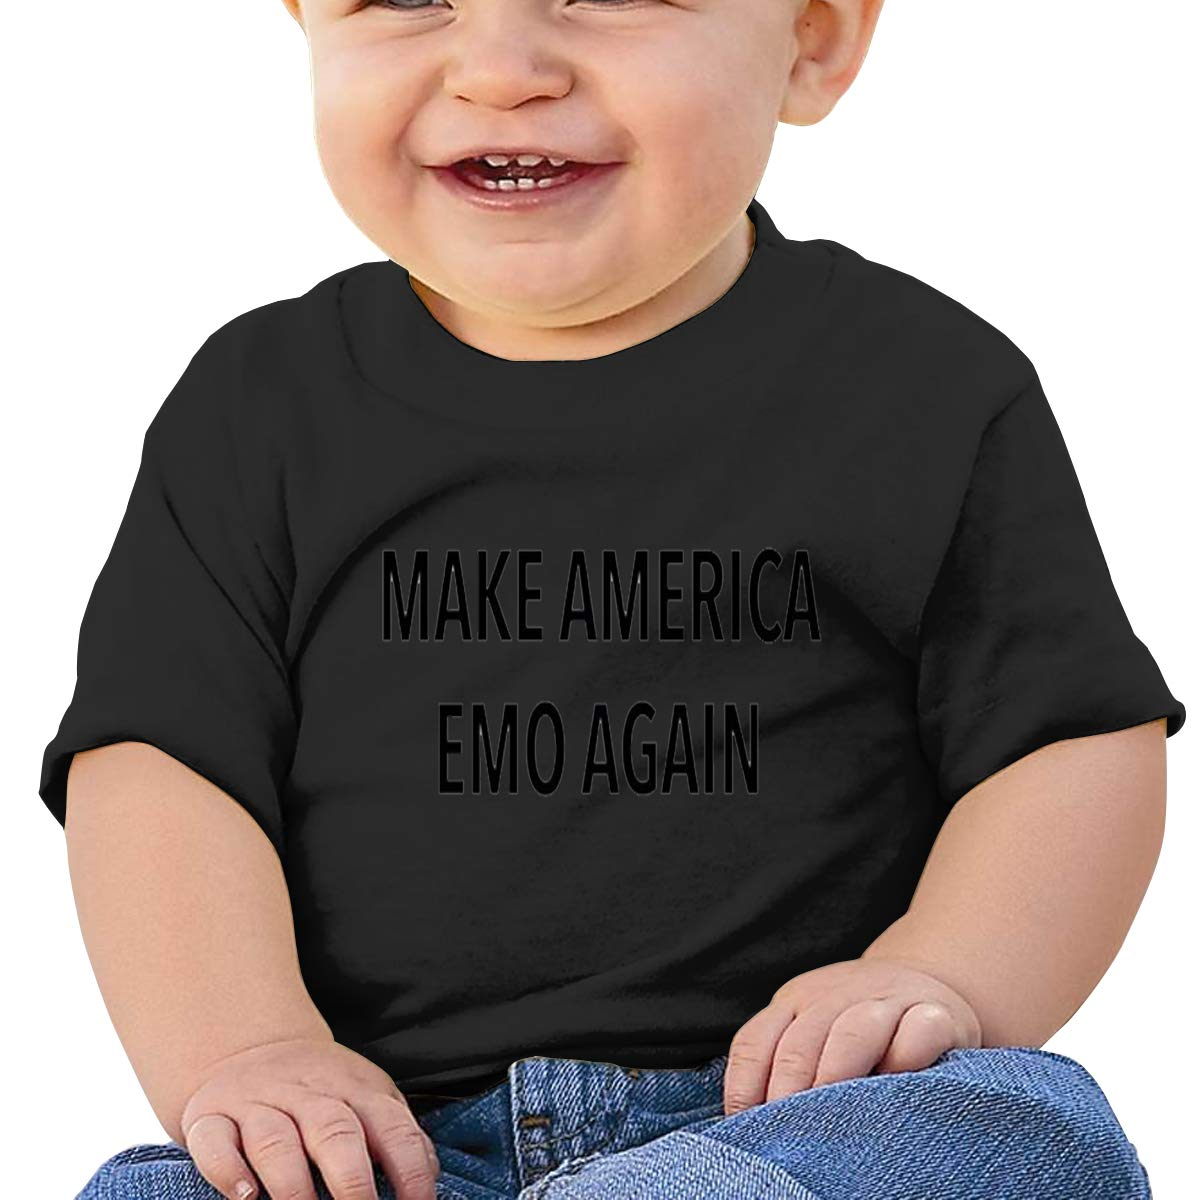 Make America Emo Again Toddler Short-Sleeve Tee for Boy Girl Infant Kids T-Shirt On Newborn 6-18 Months